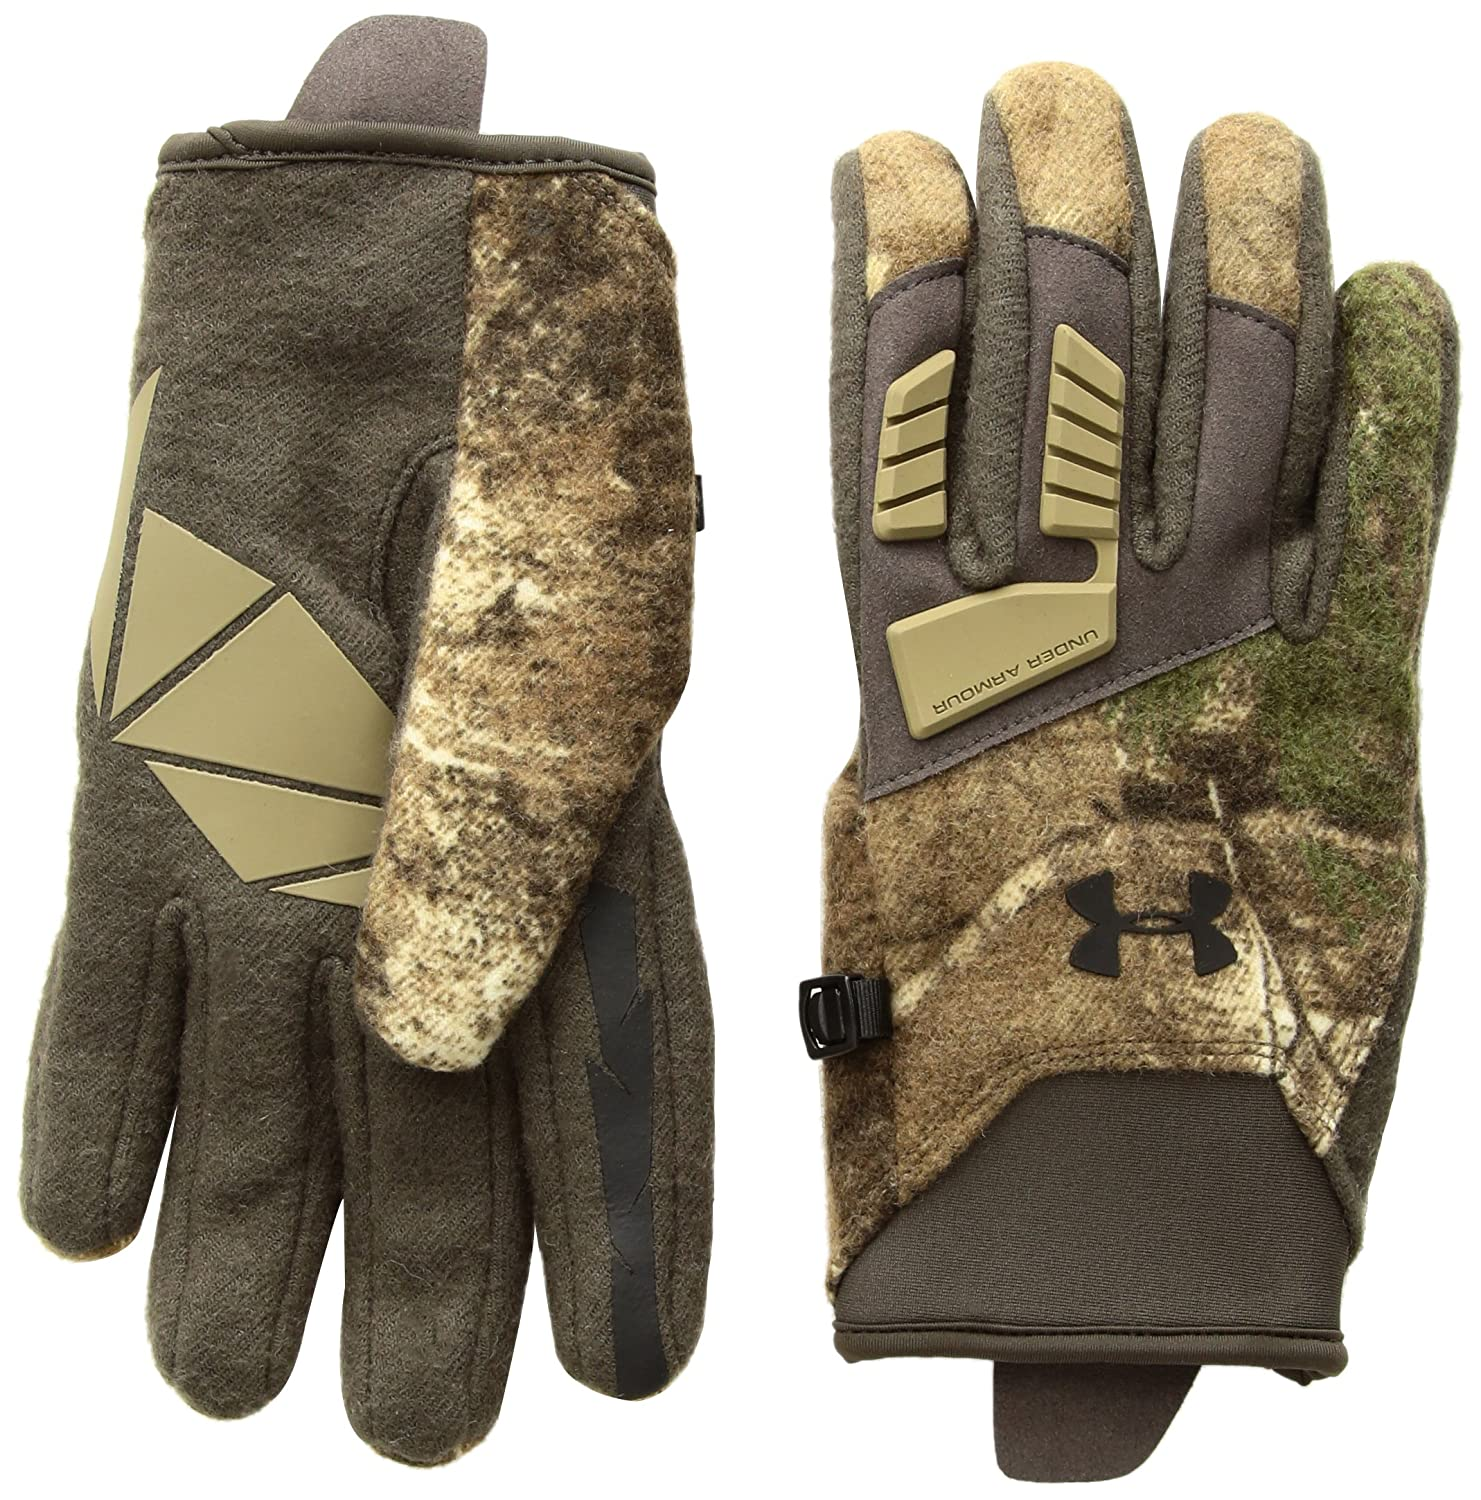 under armour cold gear gloves review